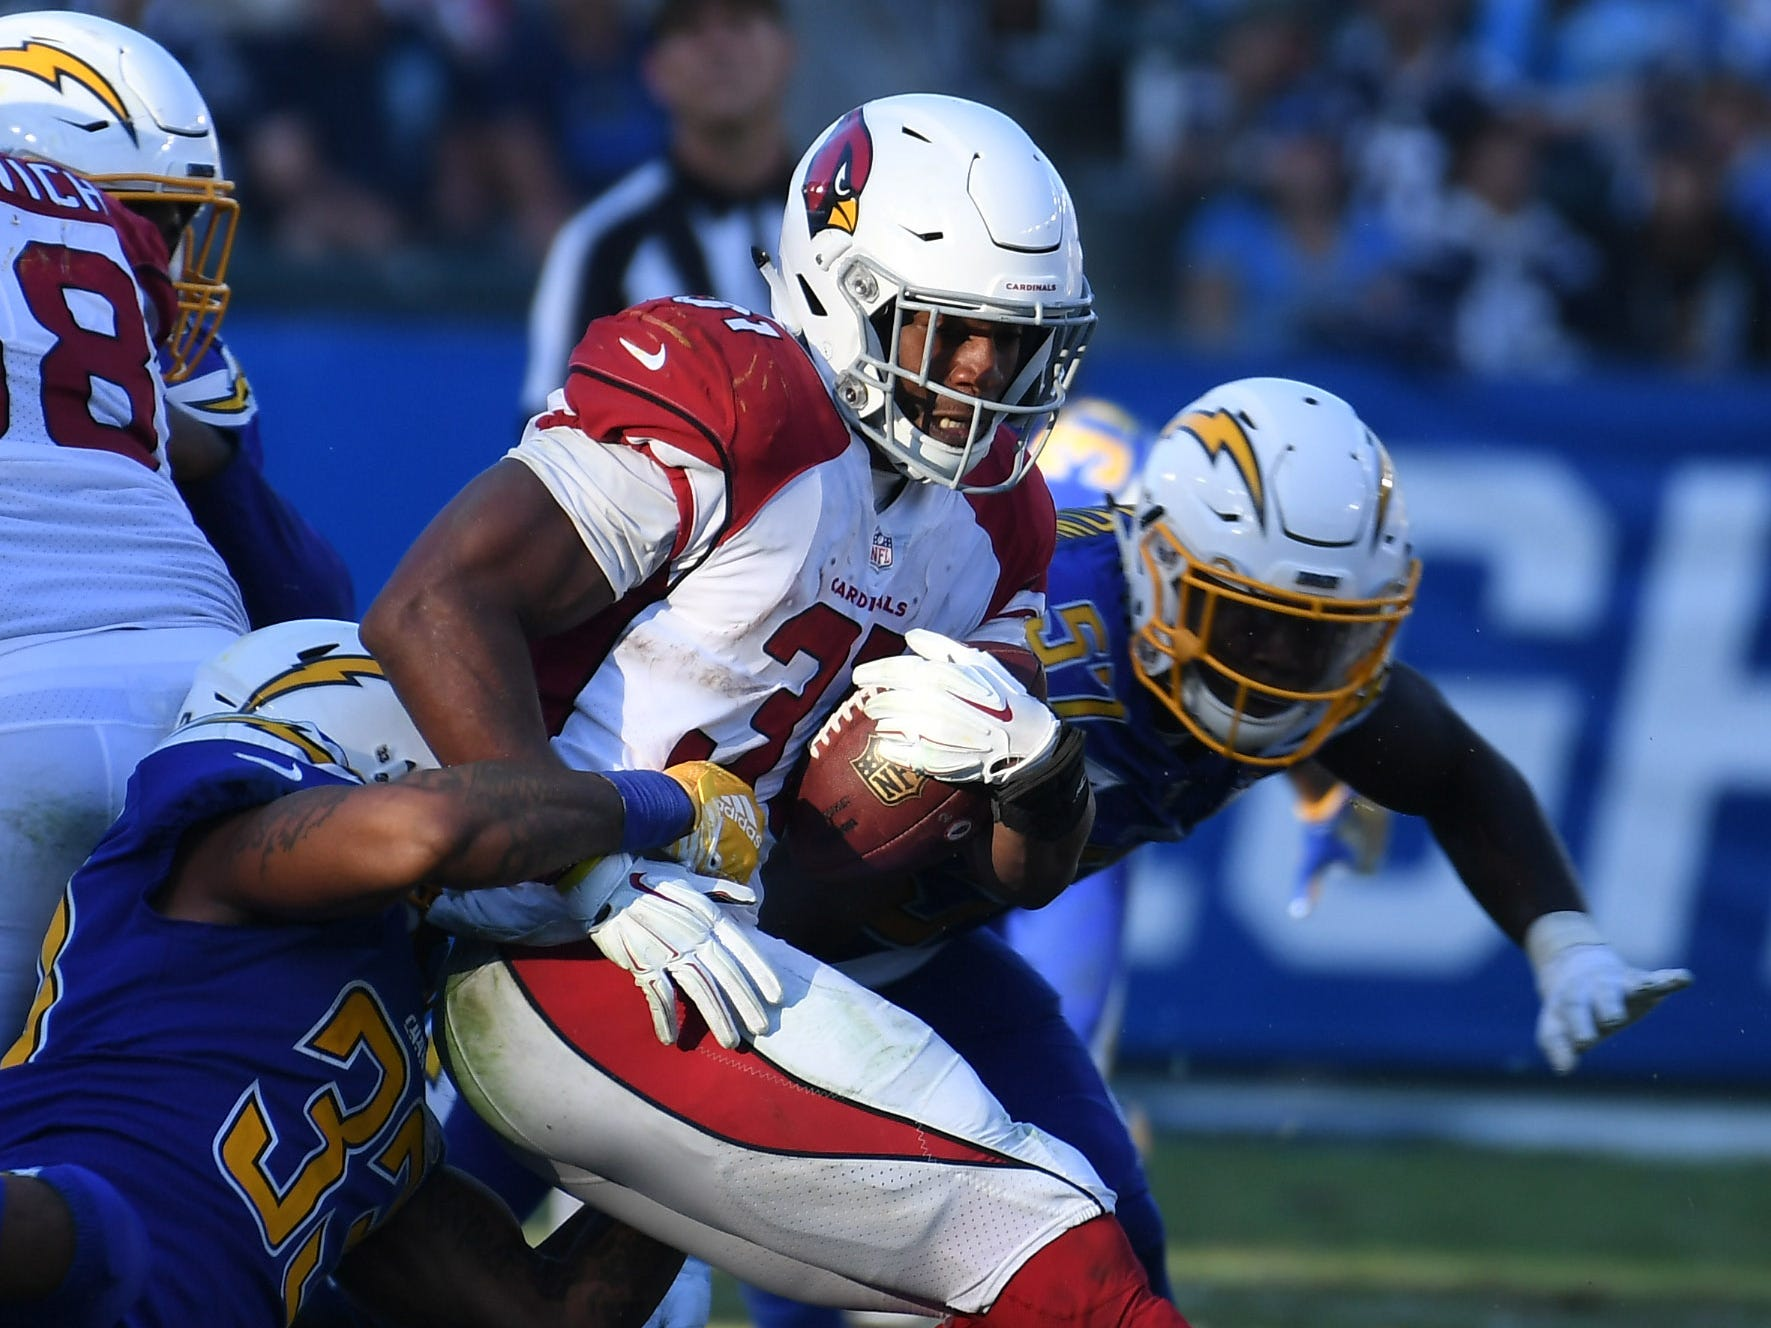 Nov 25, 2018; Carson, CA, USA; Arizona Cardinals running back David Johnson (31) is tackled by Los Angeles Chargers free safety Derwin James (33) in the second half at the StubHub Center.